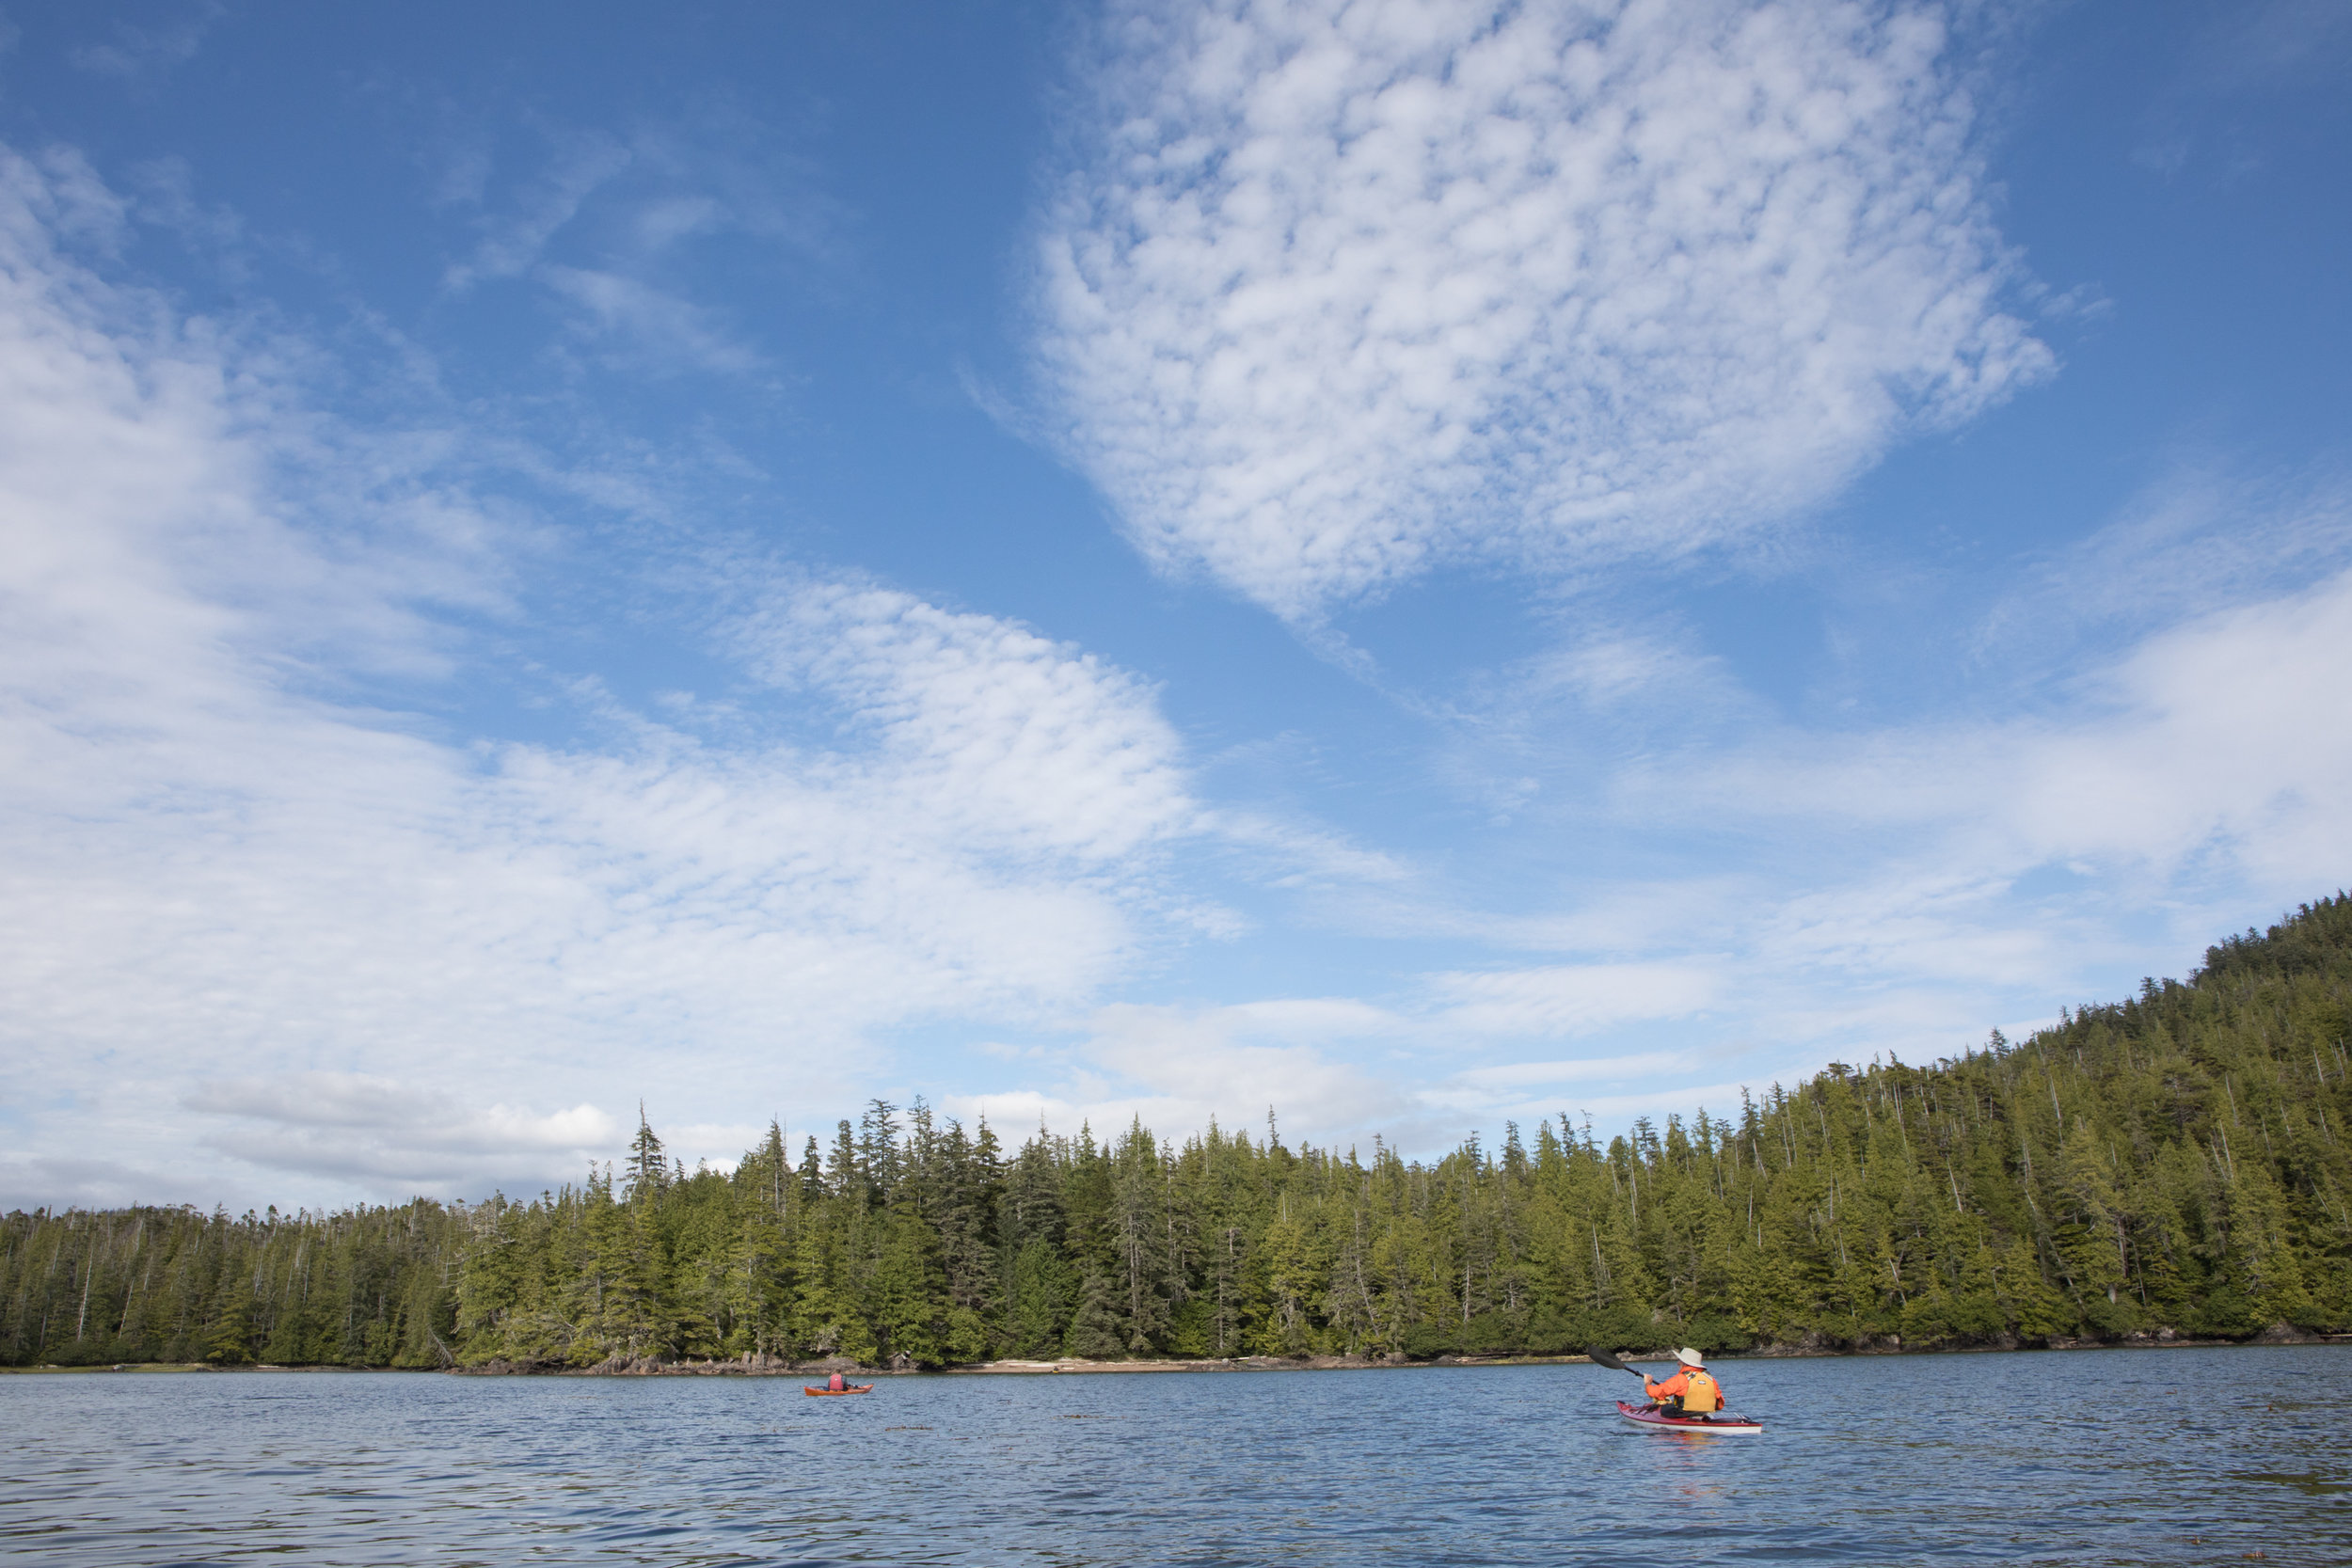 Paddling out of Klinkwan Cove. Altocumulus clouds.